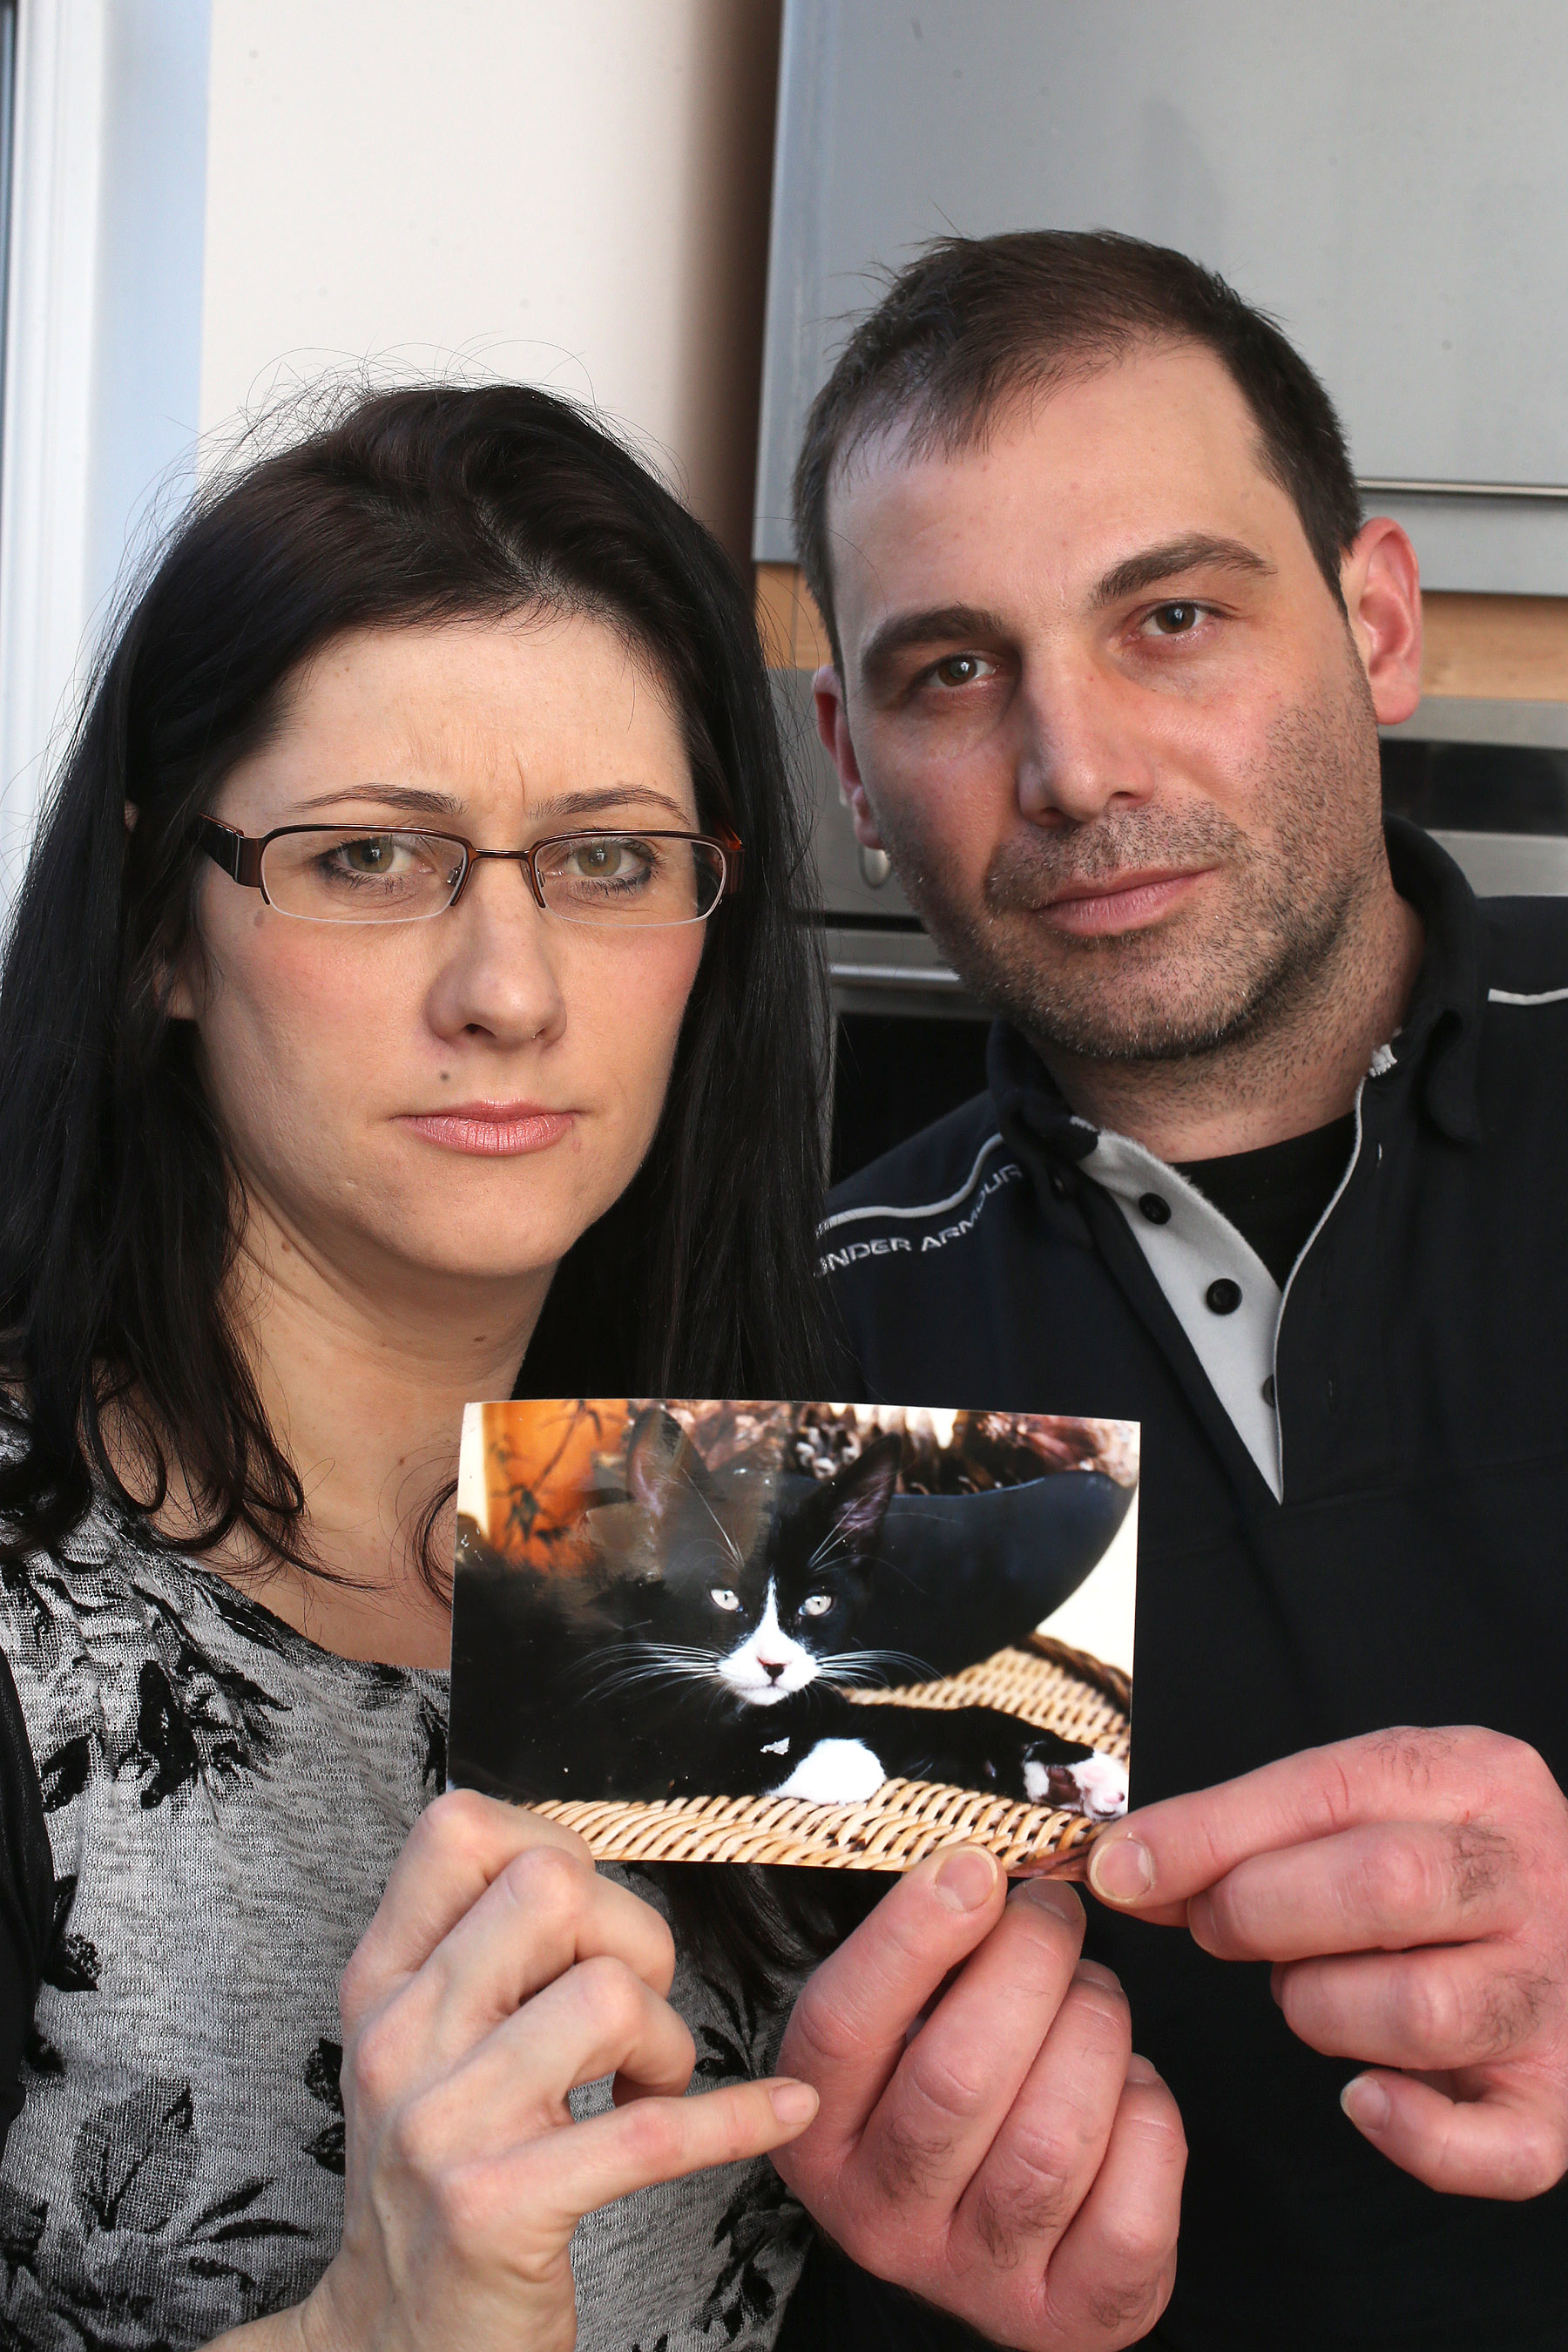 Family calls for tougher controls after cat killed by dog